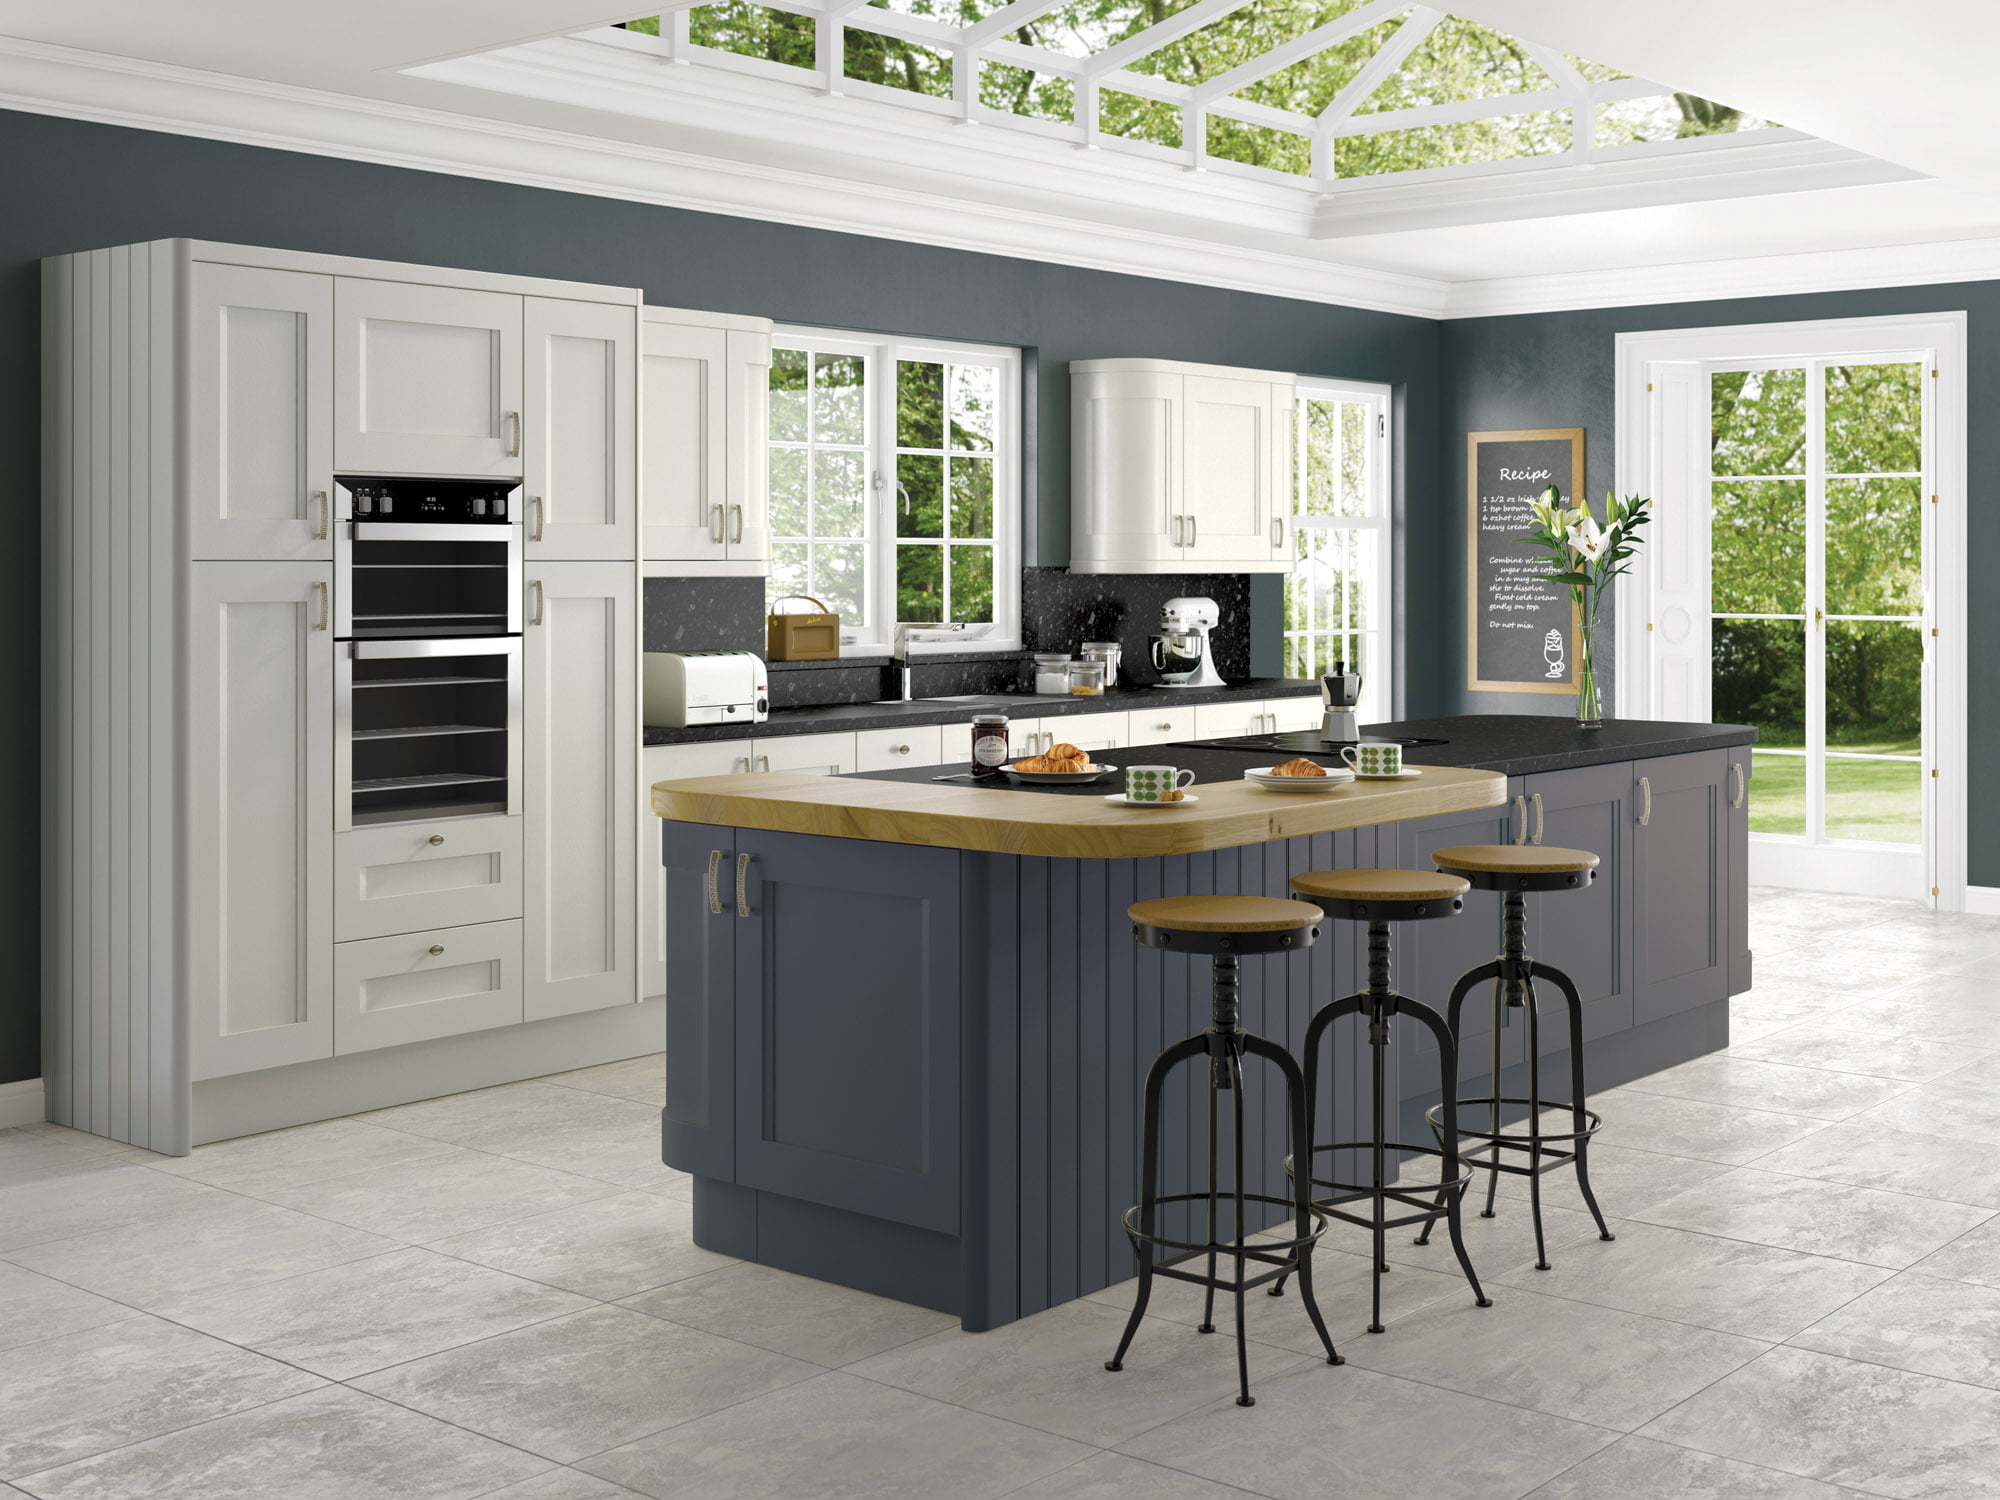 haddington storm grey with anthracite in frame kitchen